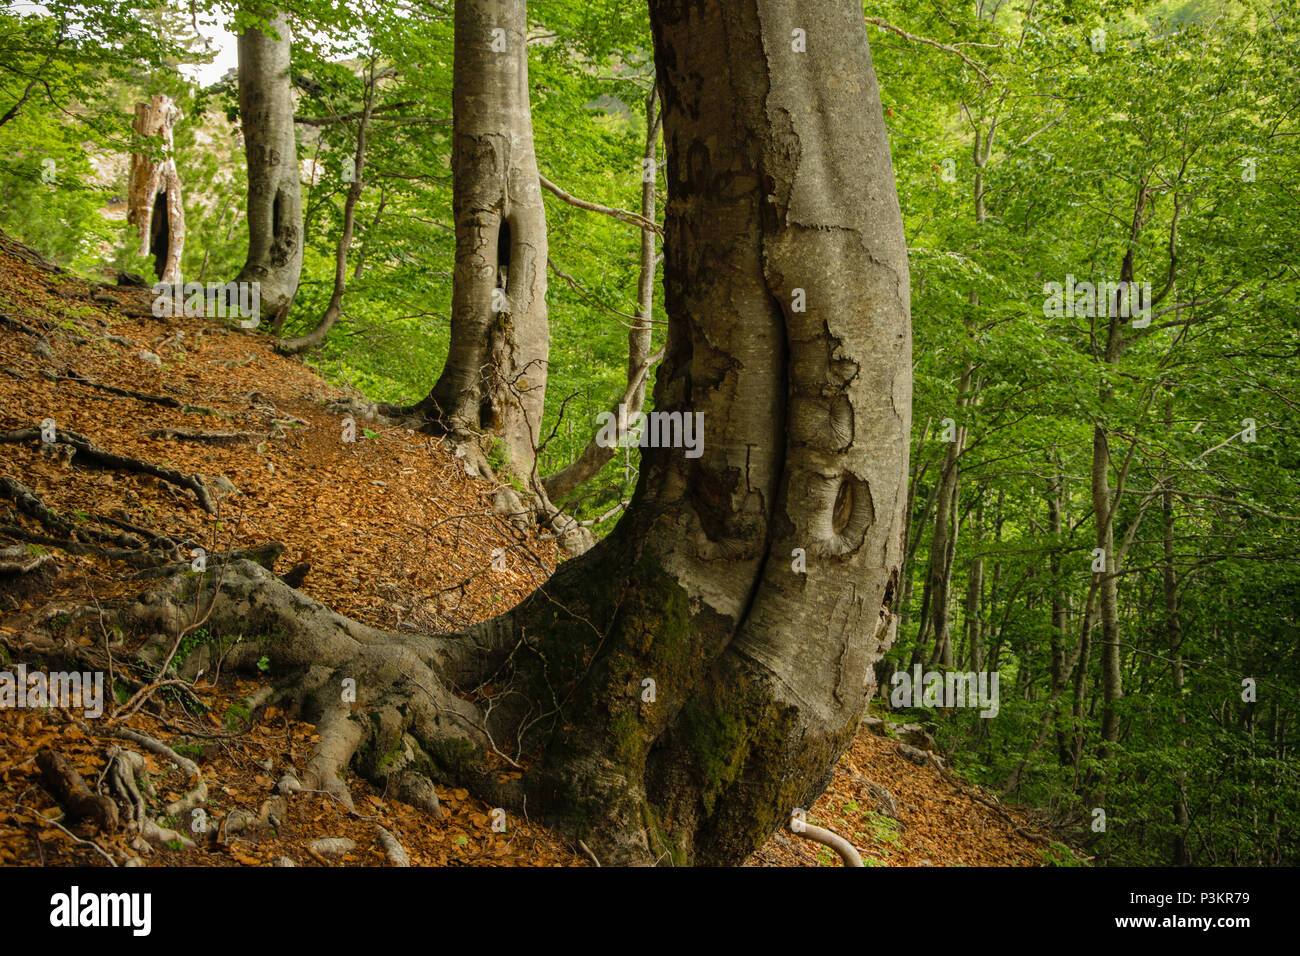 Magical crooked trees in the forest. Albania, Europe - Stock Image